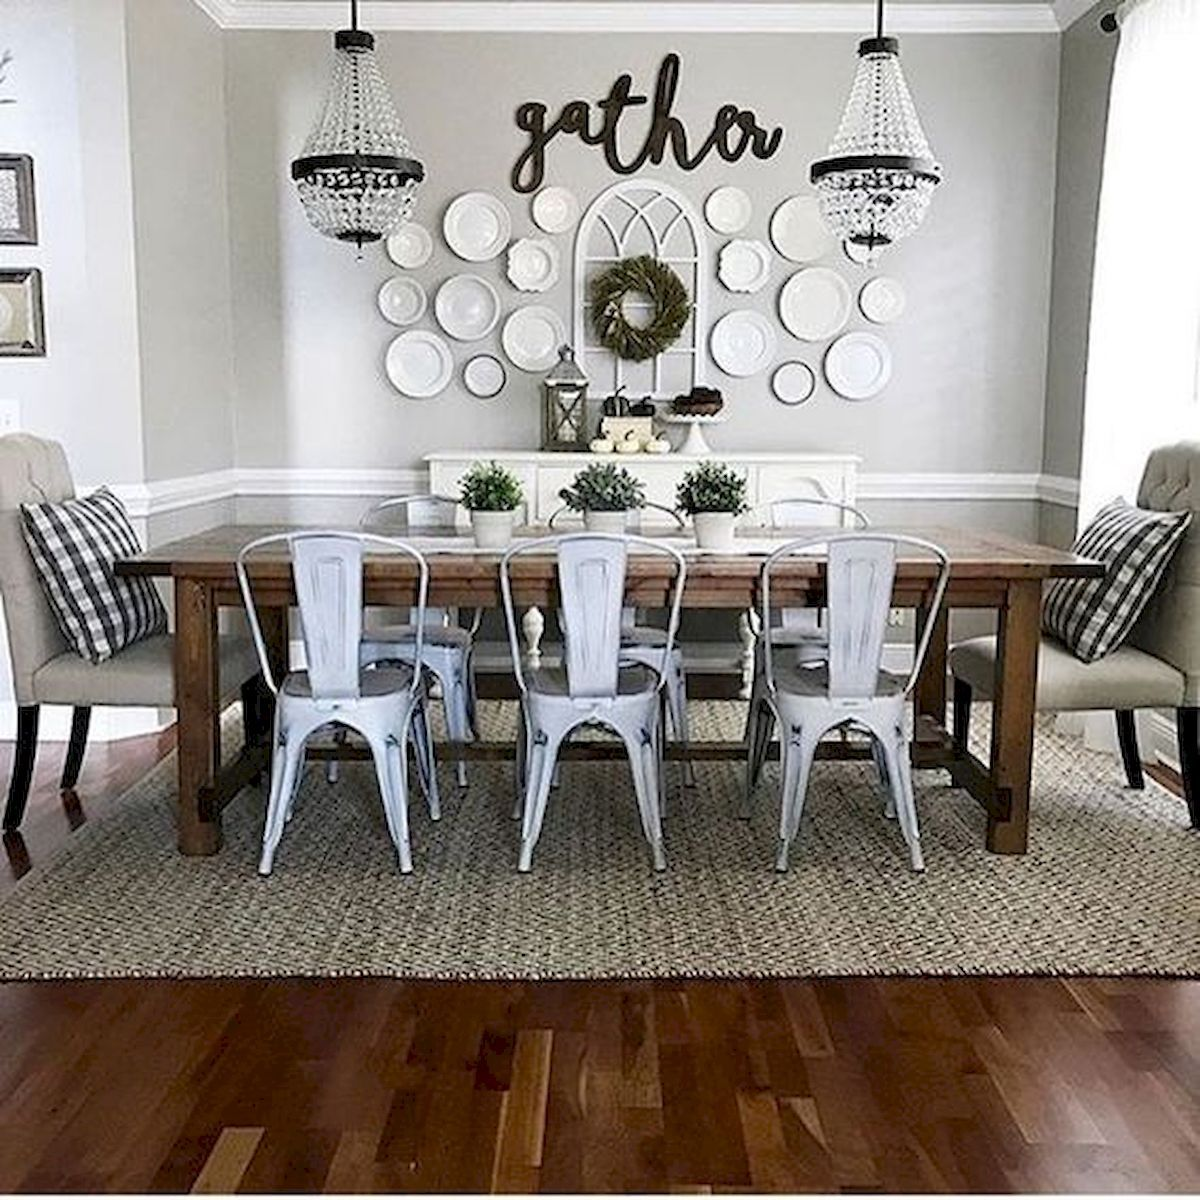 33 Adorable Dining Room Wall Art Ideas And Decor 33decor Dining Room Makeover Farmhouse Dining Rooms Decor Dining Room Remodel